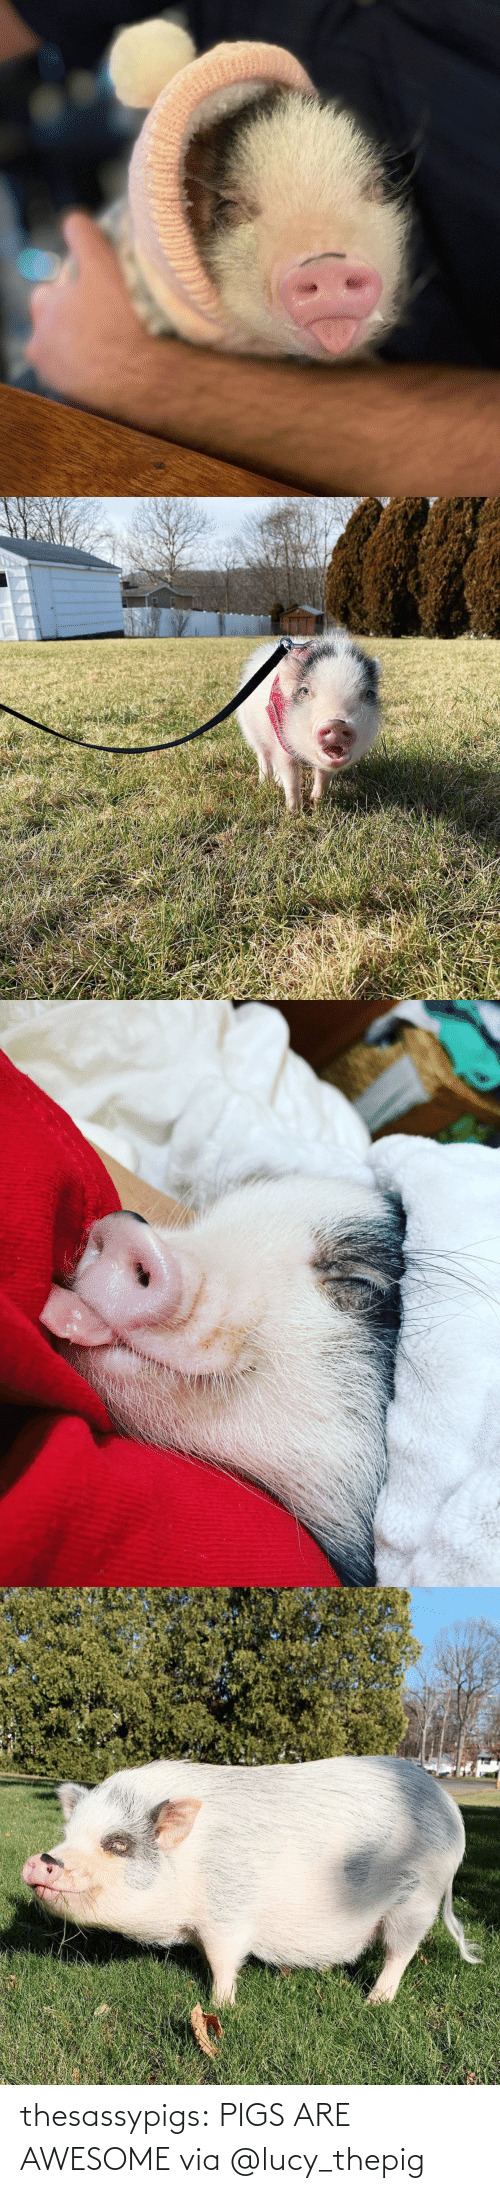 pigs: thesassypigs: PIGS ARE AWESOME via @lucy_thepig